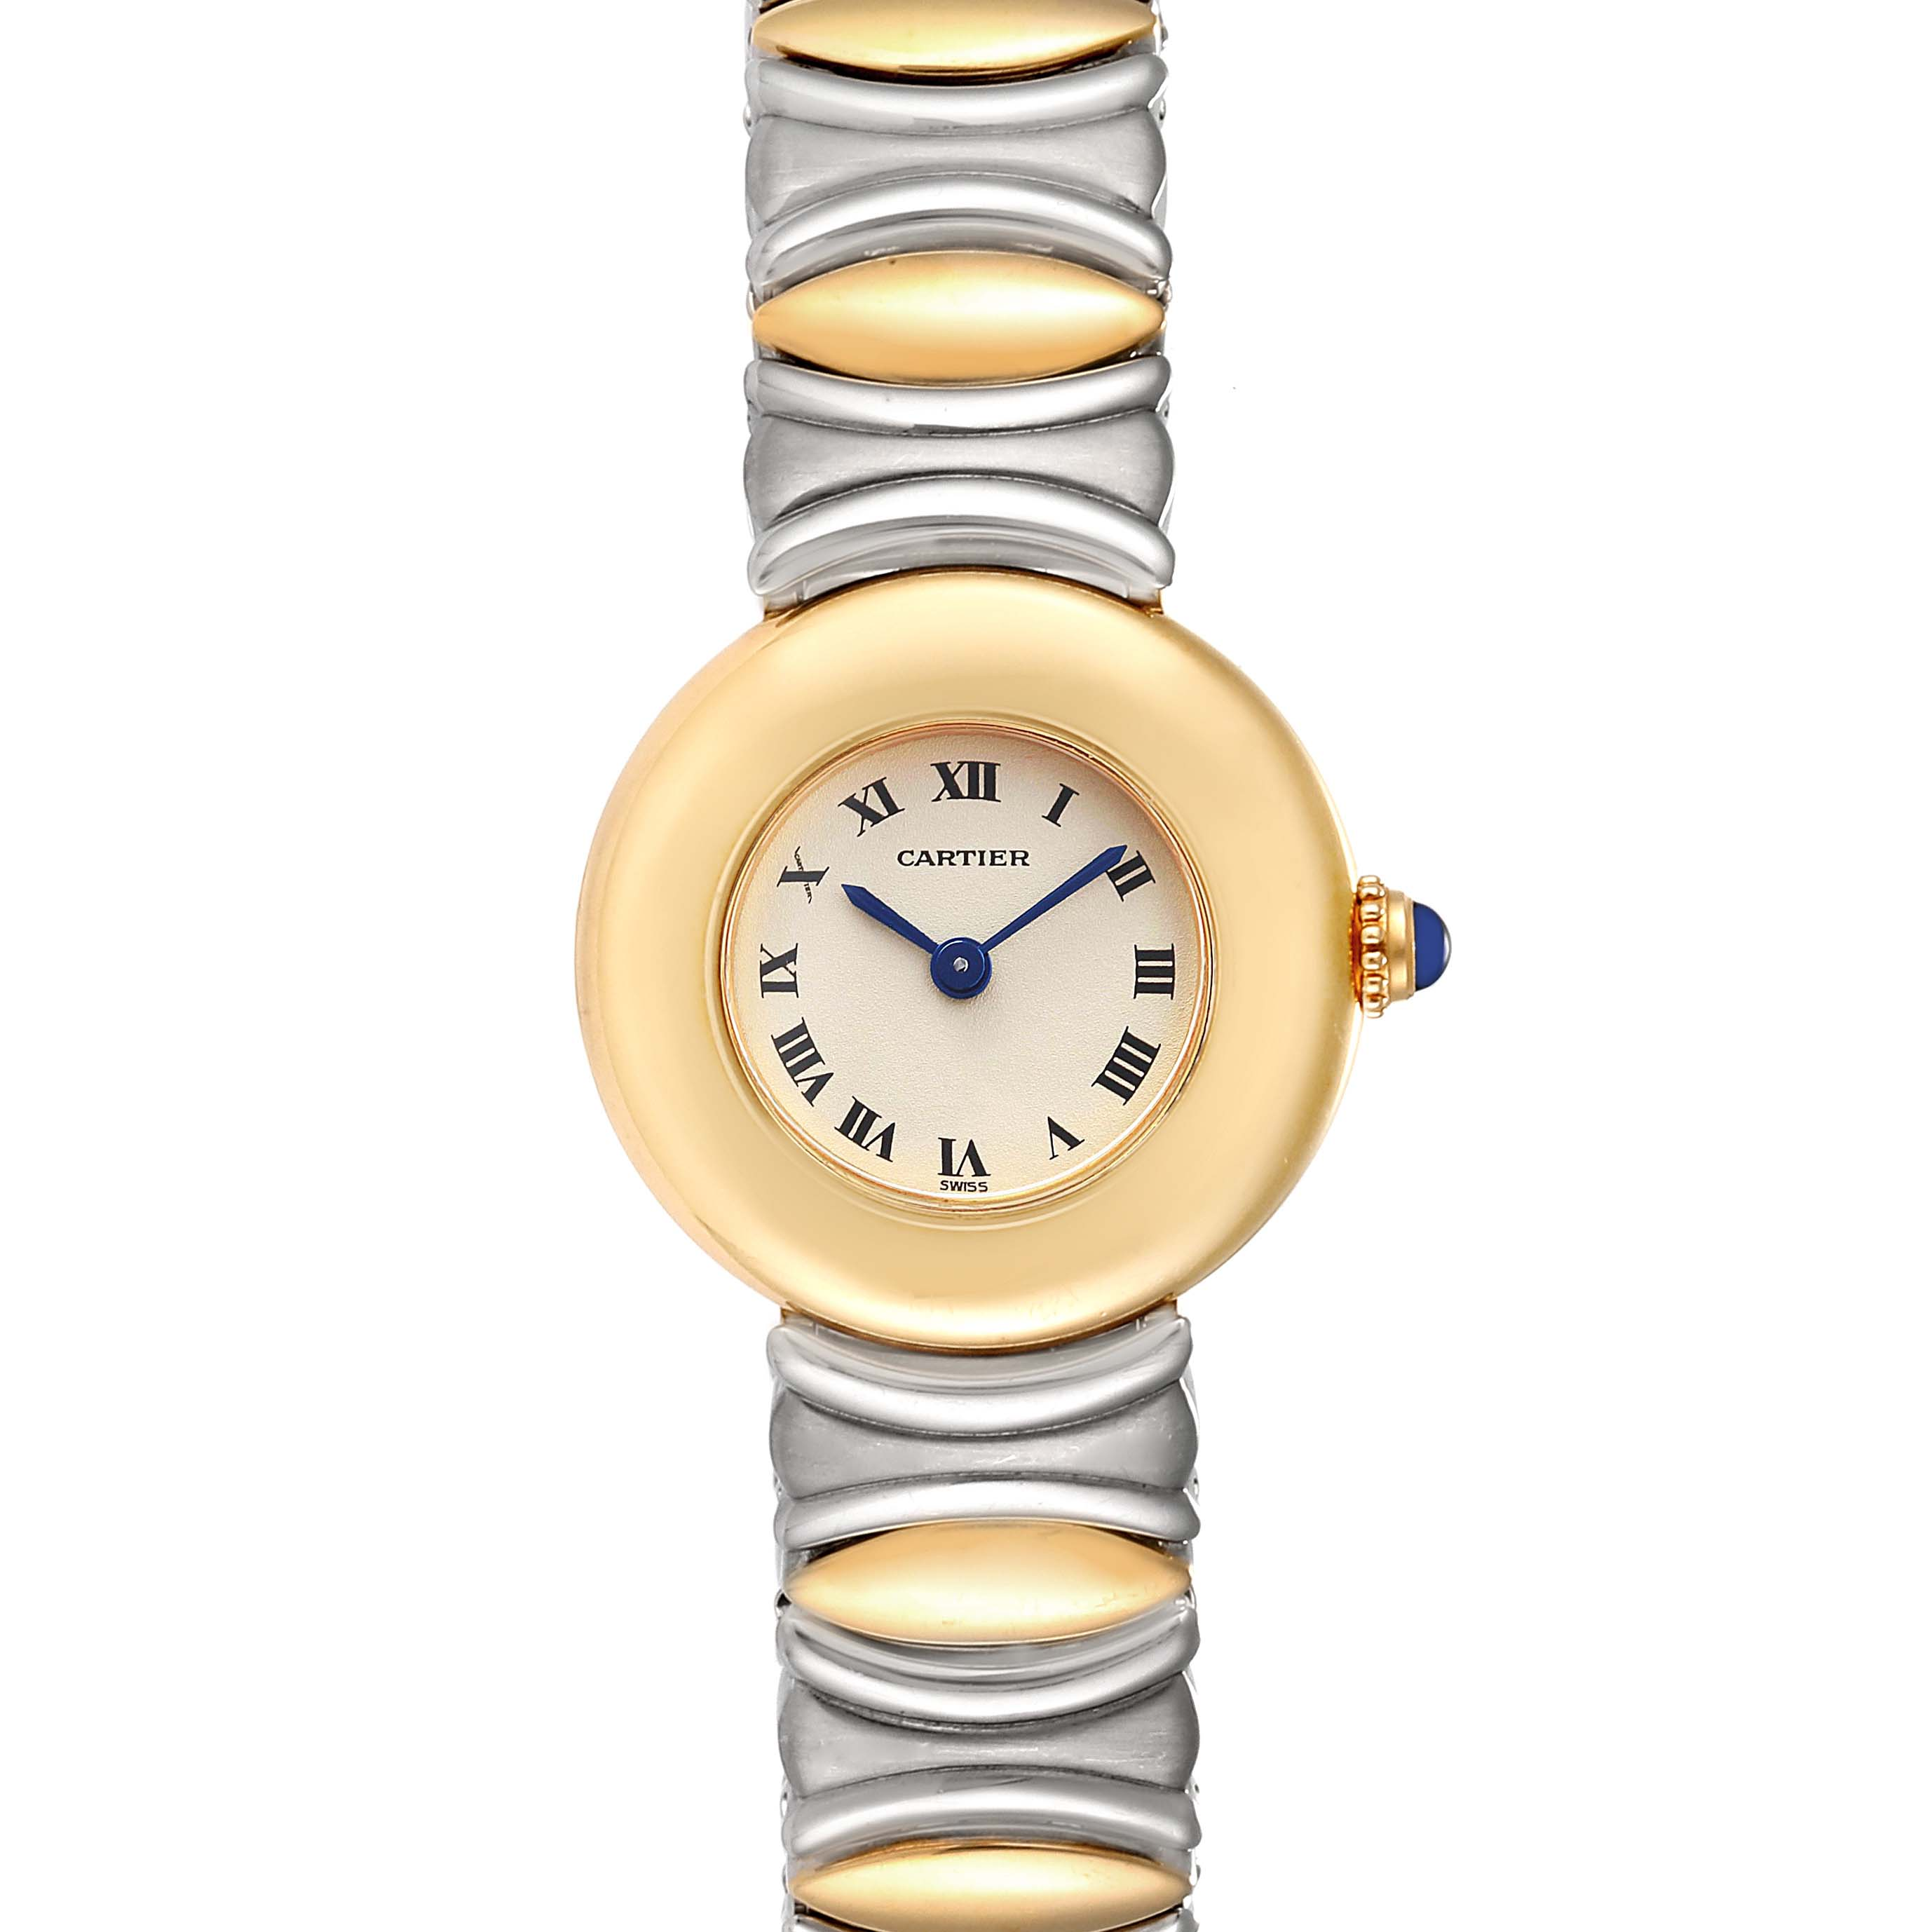 Cartier Colisee Casque d'Or Ladies Stainless Steel 18k Yellow Gold Watch